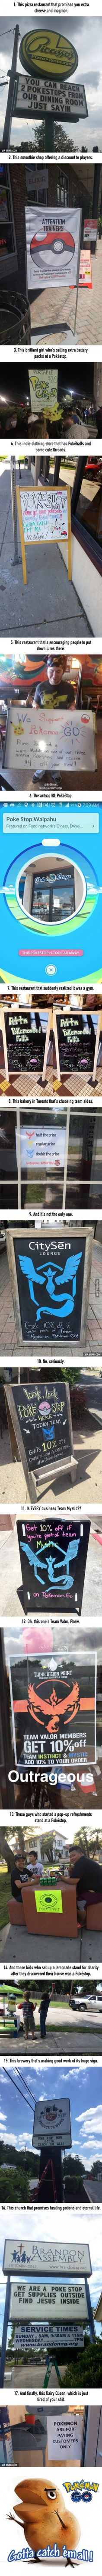 17 Small Businesses That Are Totally Cashing In On Pokemon Go